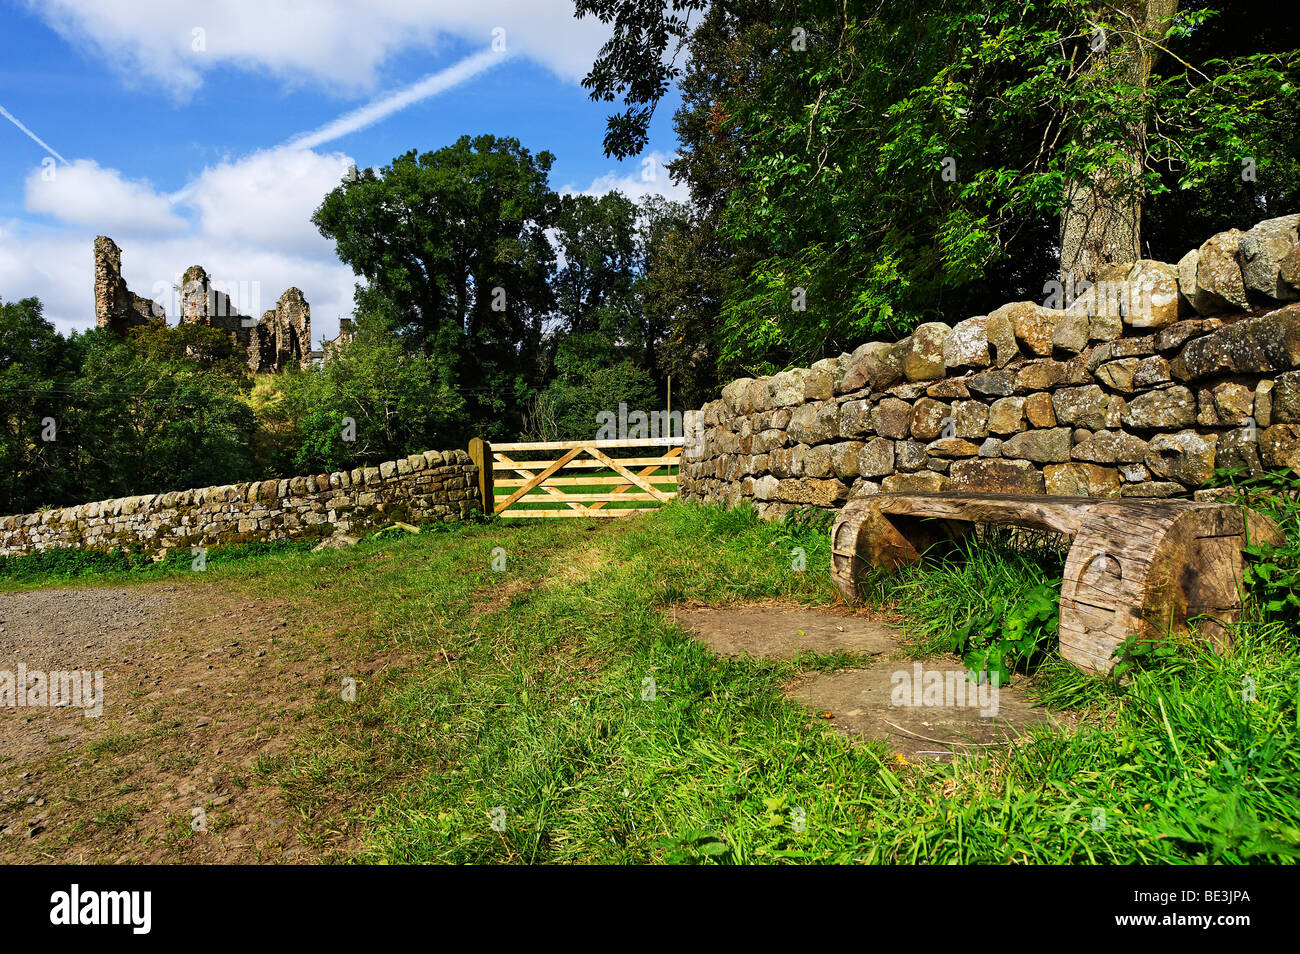 Hadrian's Wall long distance footpath in the vicinity of Thirlwall Castle at Greenhead in Cumbria - Stock Image